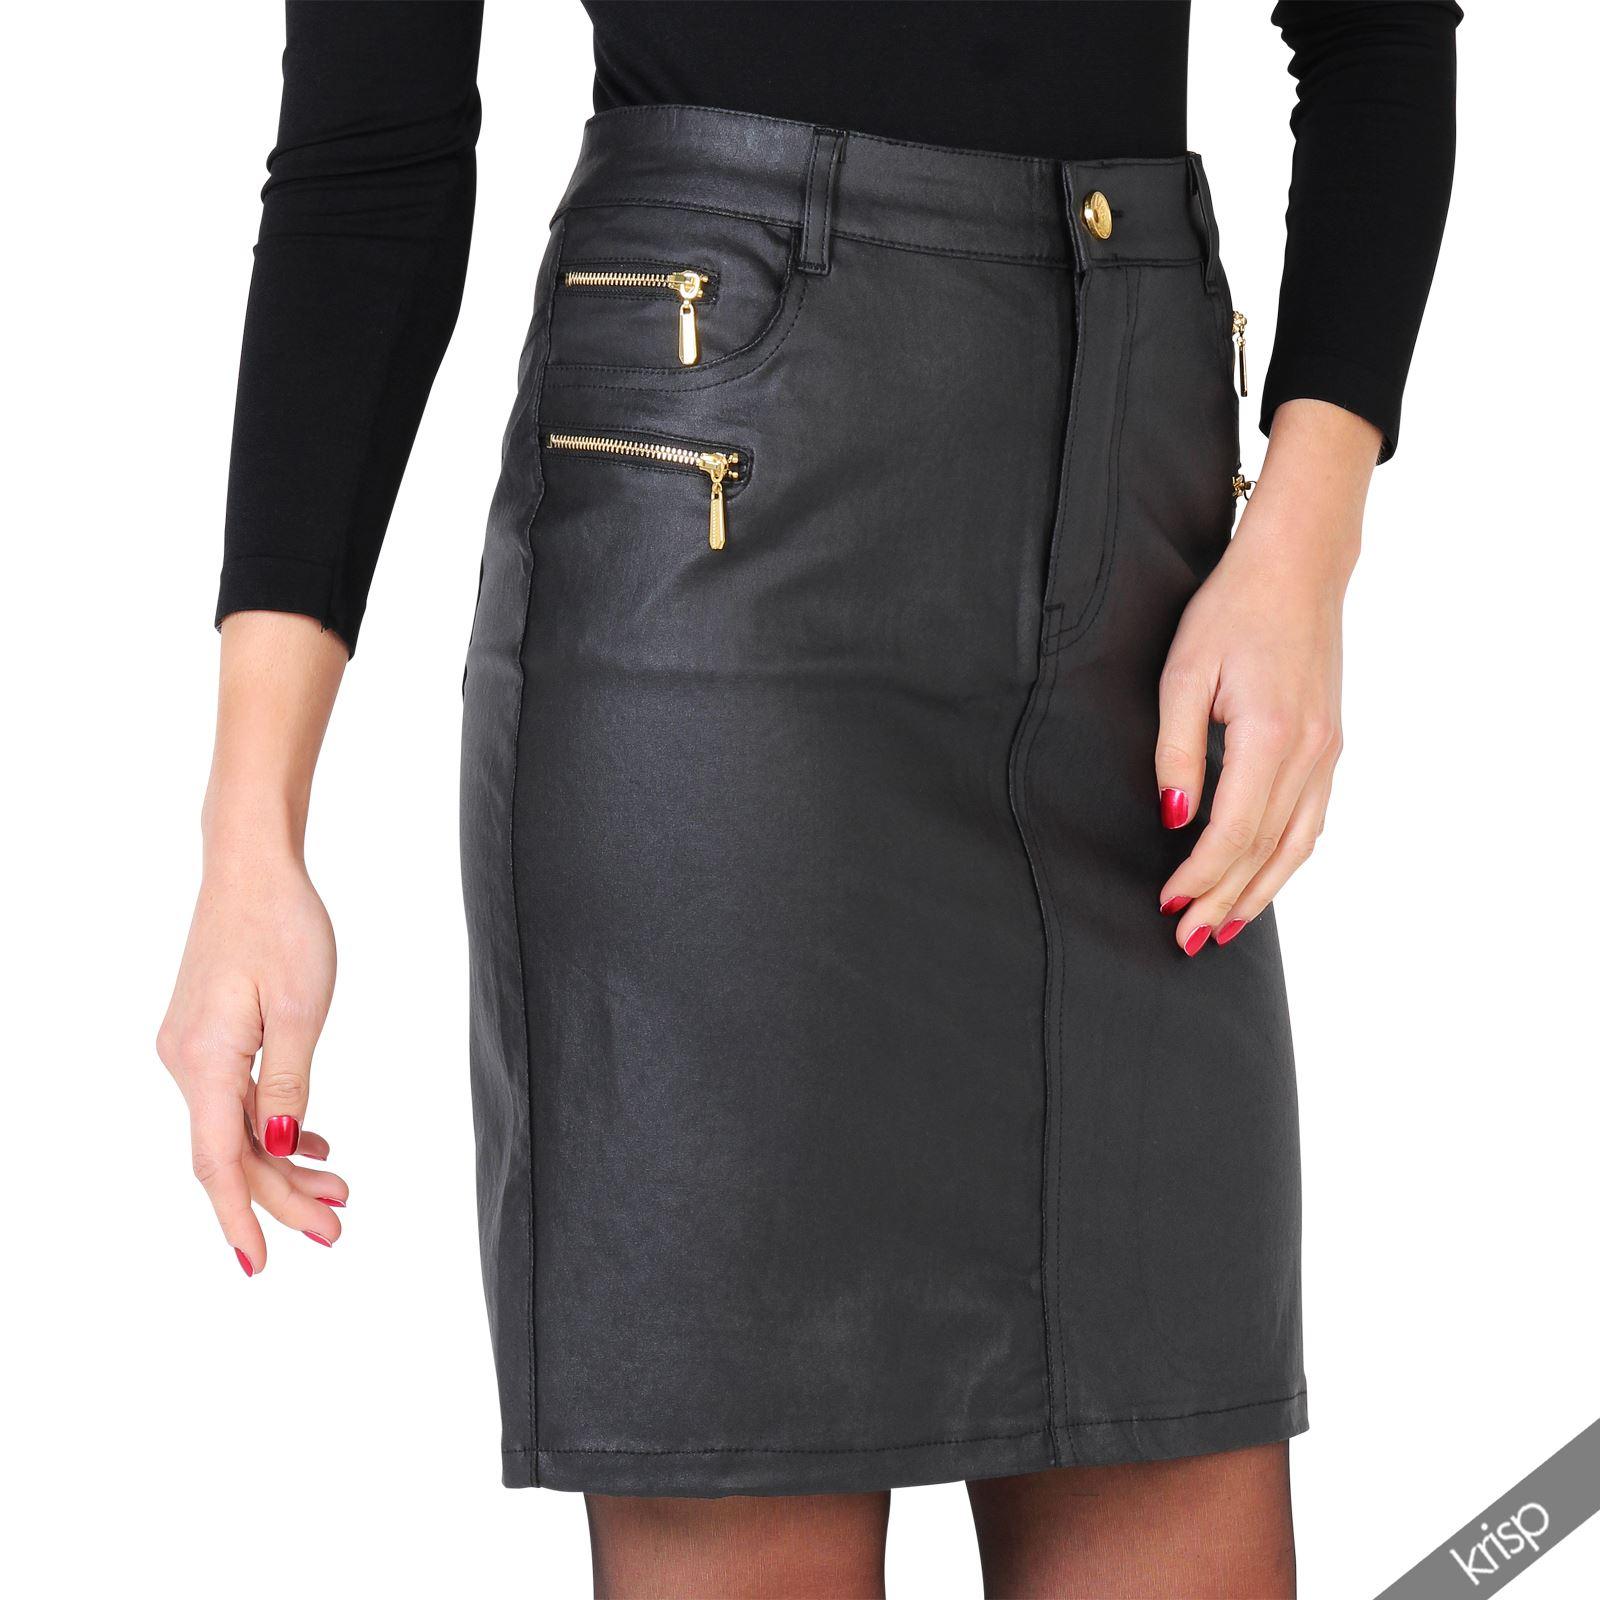 Womens-Ladies-Leather-Pencil-Skirt-Sexy-Wet-Look-Stretch-PU-Mini-Midi-Bodycon thumbnail 6